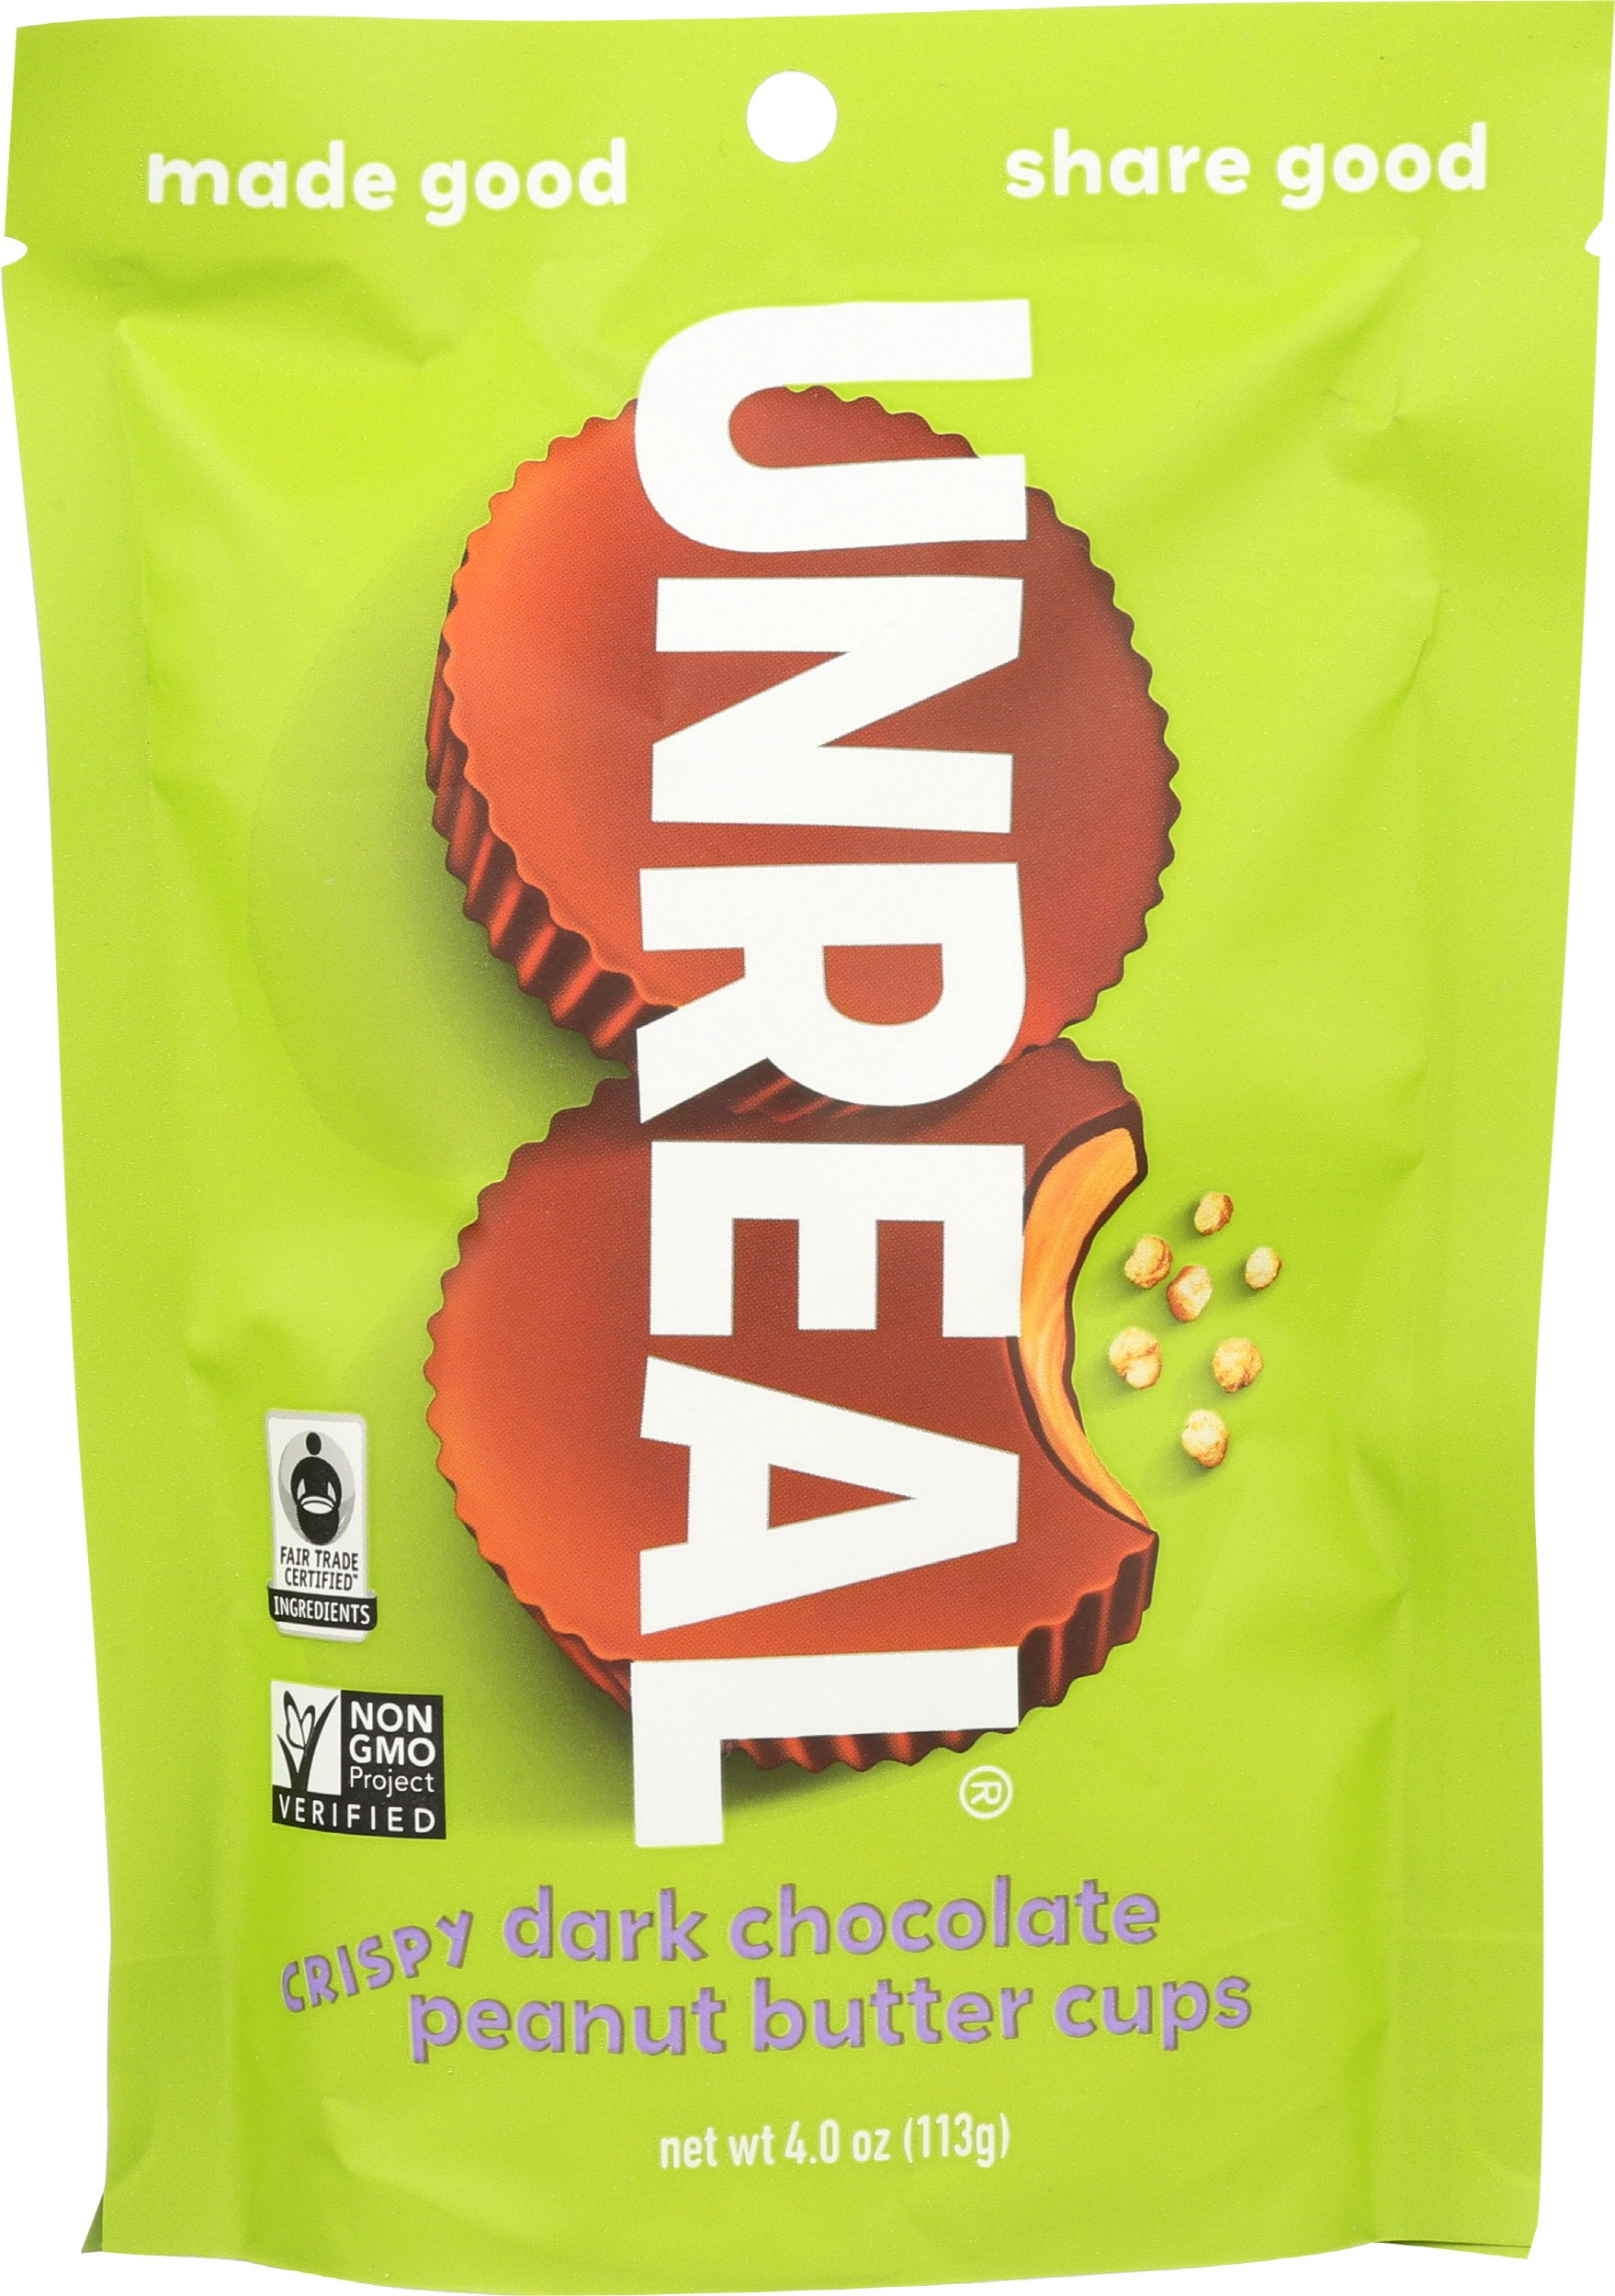 UNREAL Gluten-Free, Vegan, Non-GMO Dark Chocolate Crispy Peanut Butter Cups - 1 Bag